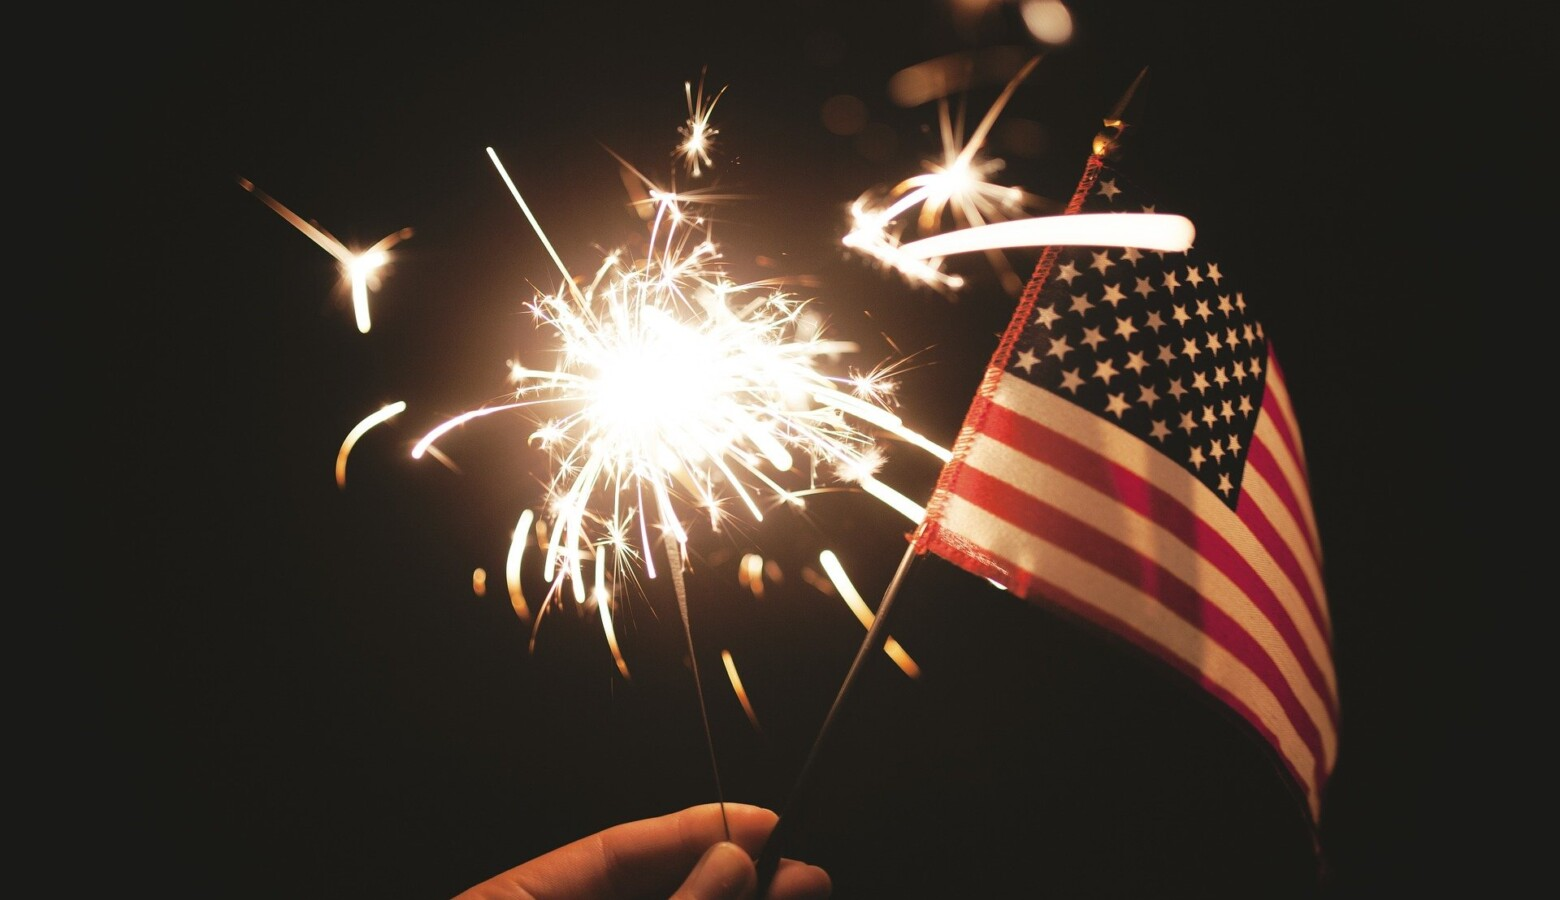 Fireworks are governed by both state and local laws in Indiana. (Pixabay)